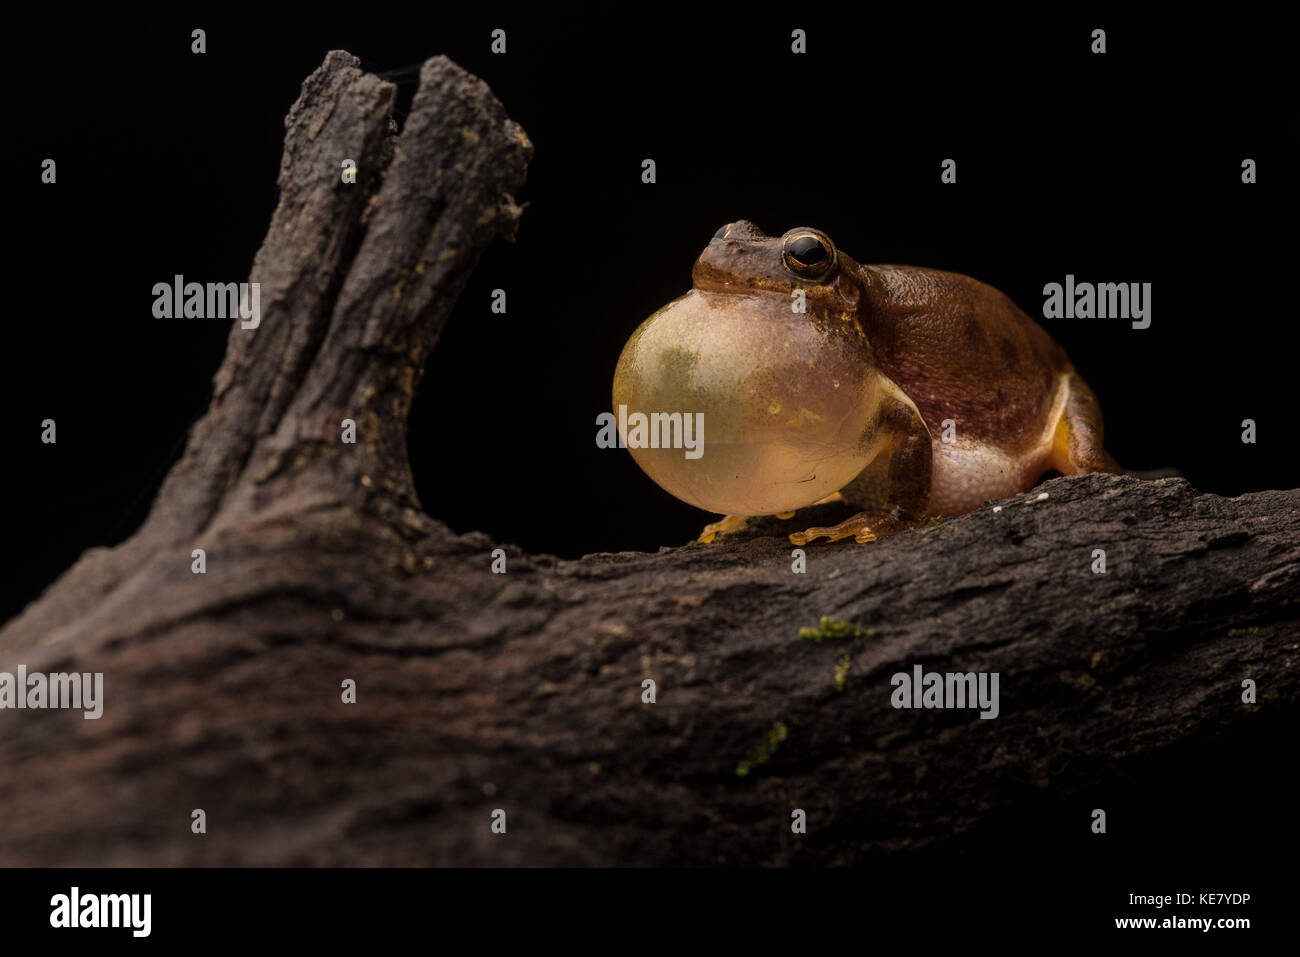 A male squirrel tree frog loudly vocalizes in order to attract females. - Stock Image